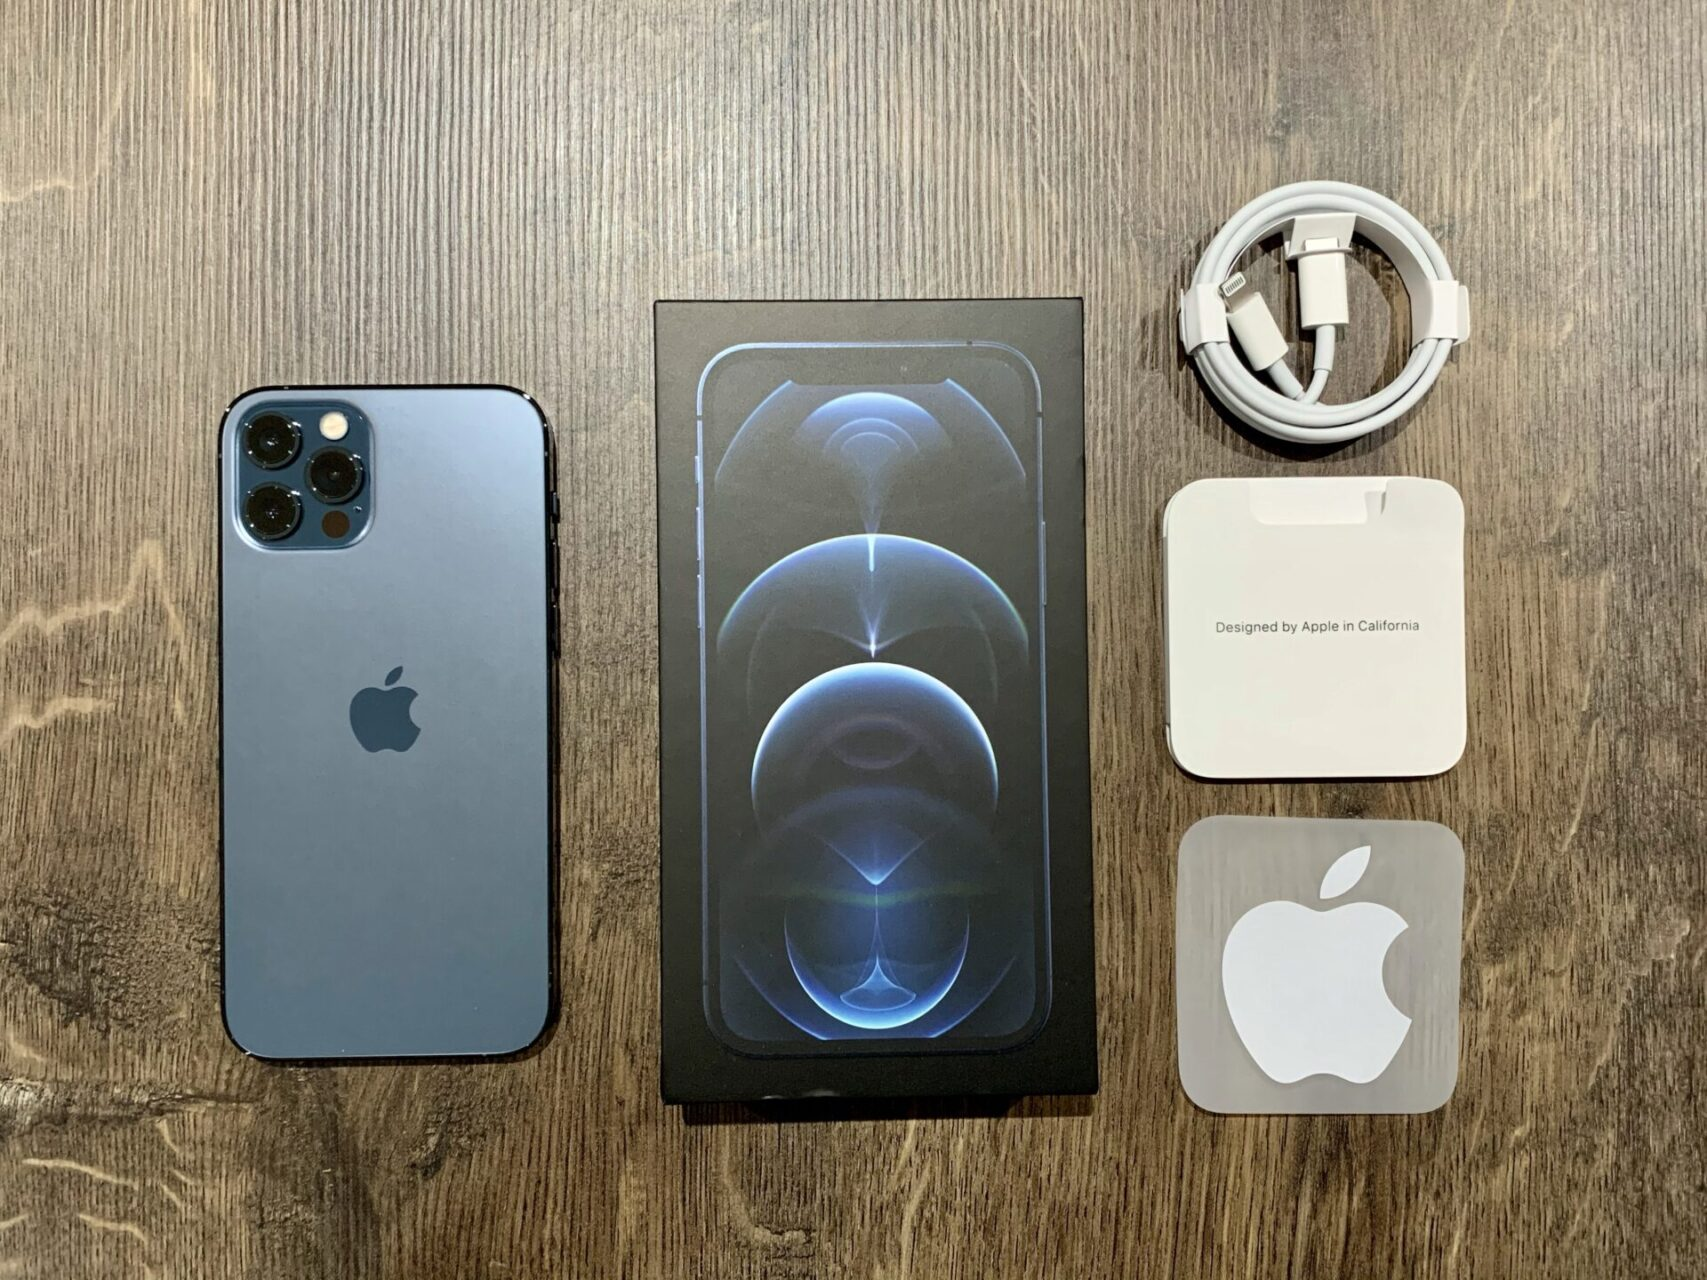 iPhone 12 Pro box contents